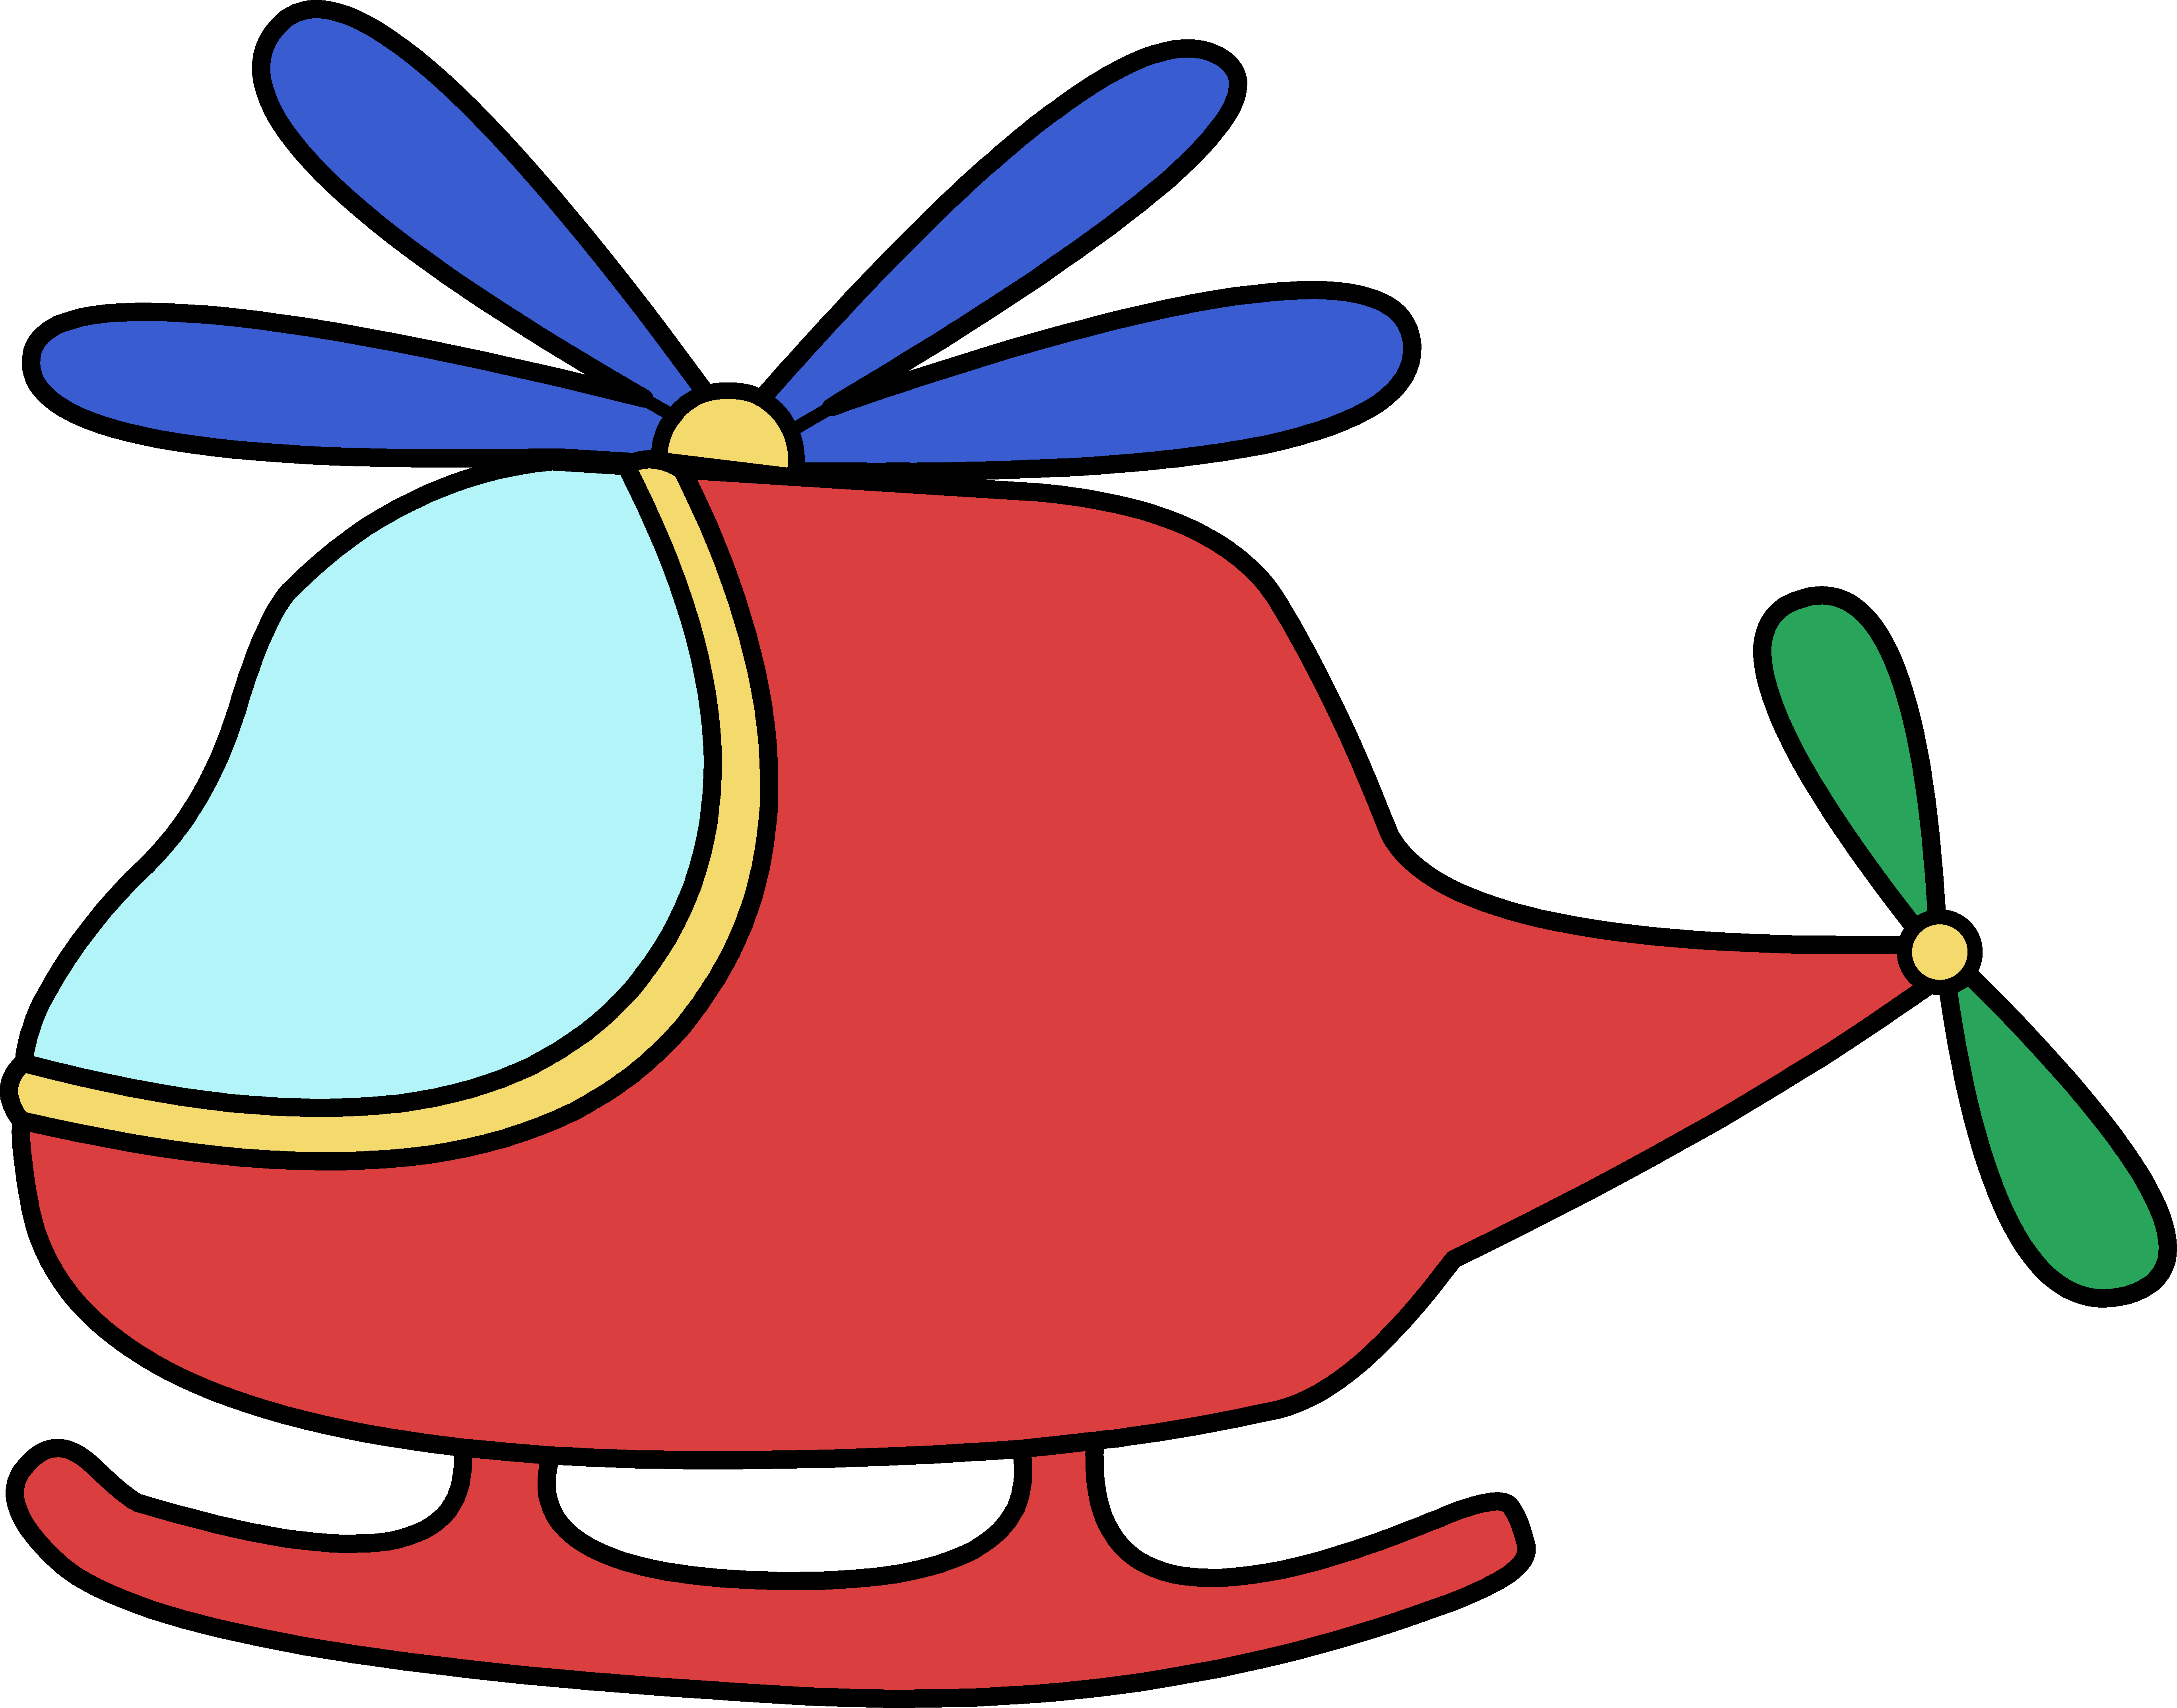 Toy clipart simple. Free helicopter graphics download